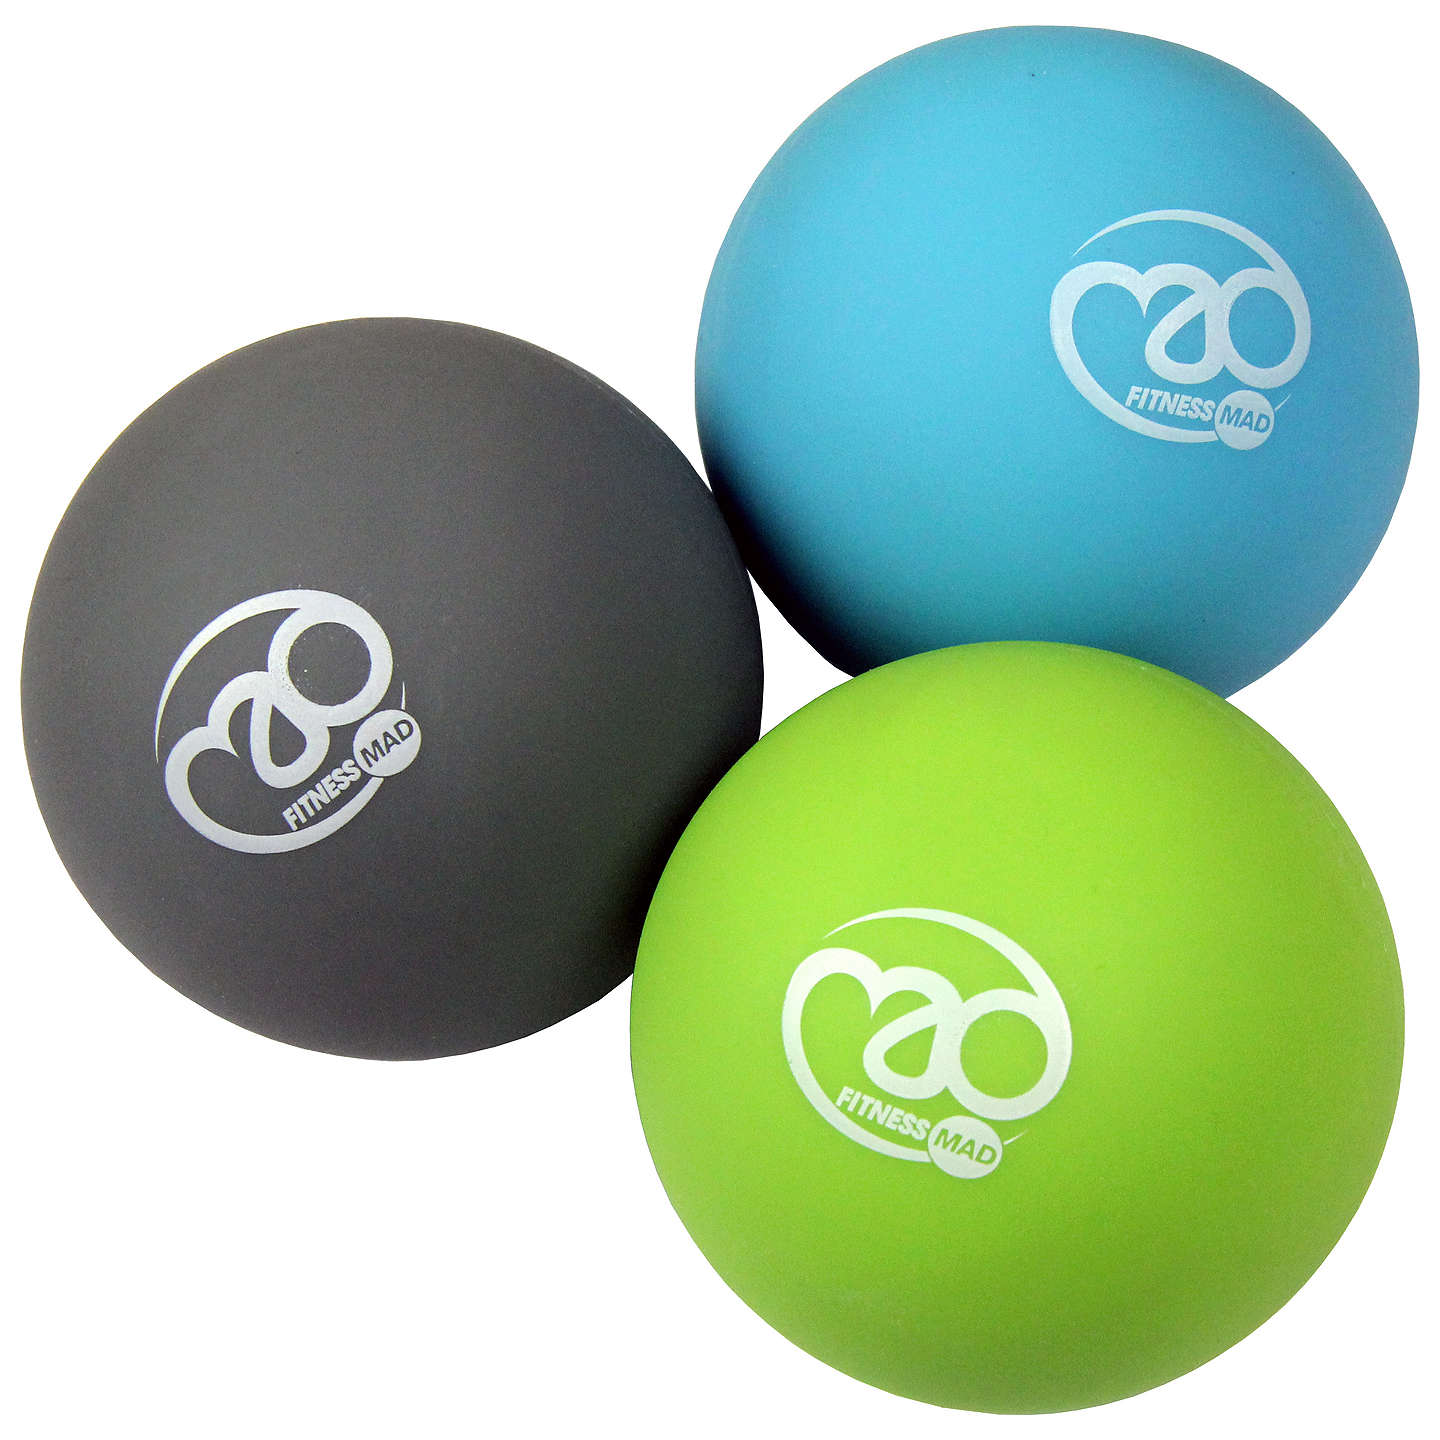 Yoga-Mad Trigger Point Massage Ball Set, Multi At John Lewis